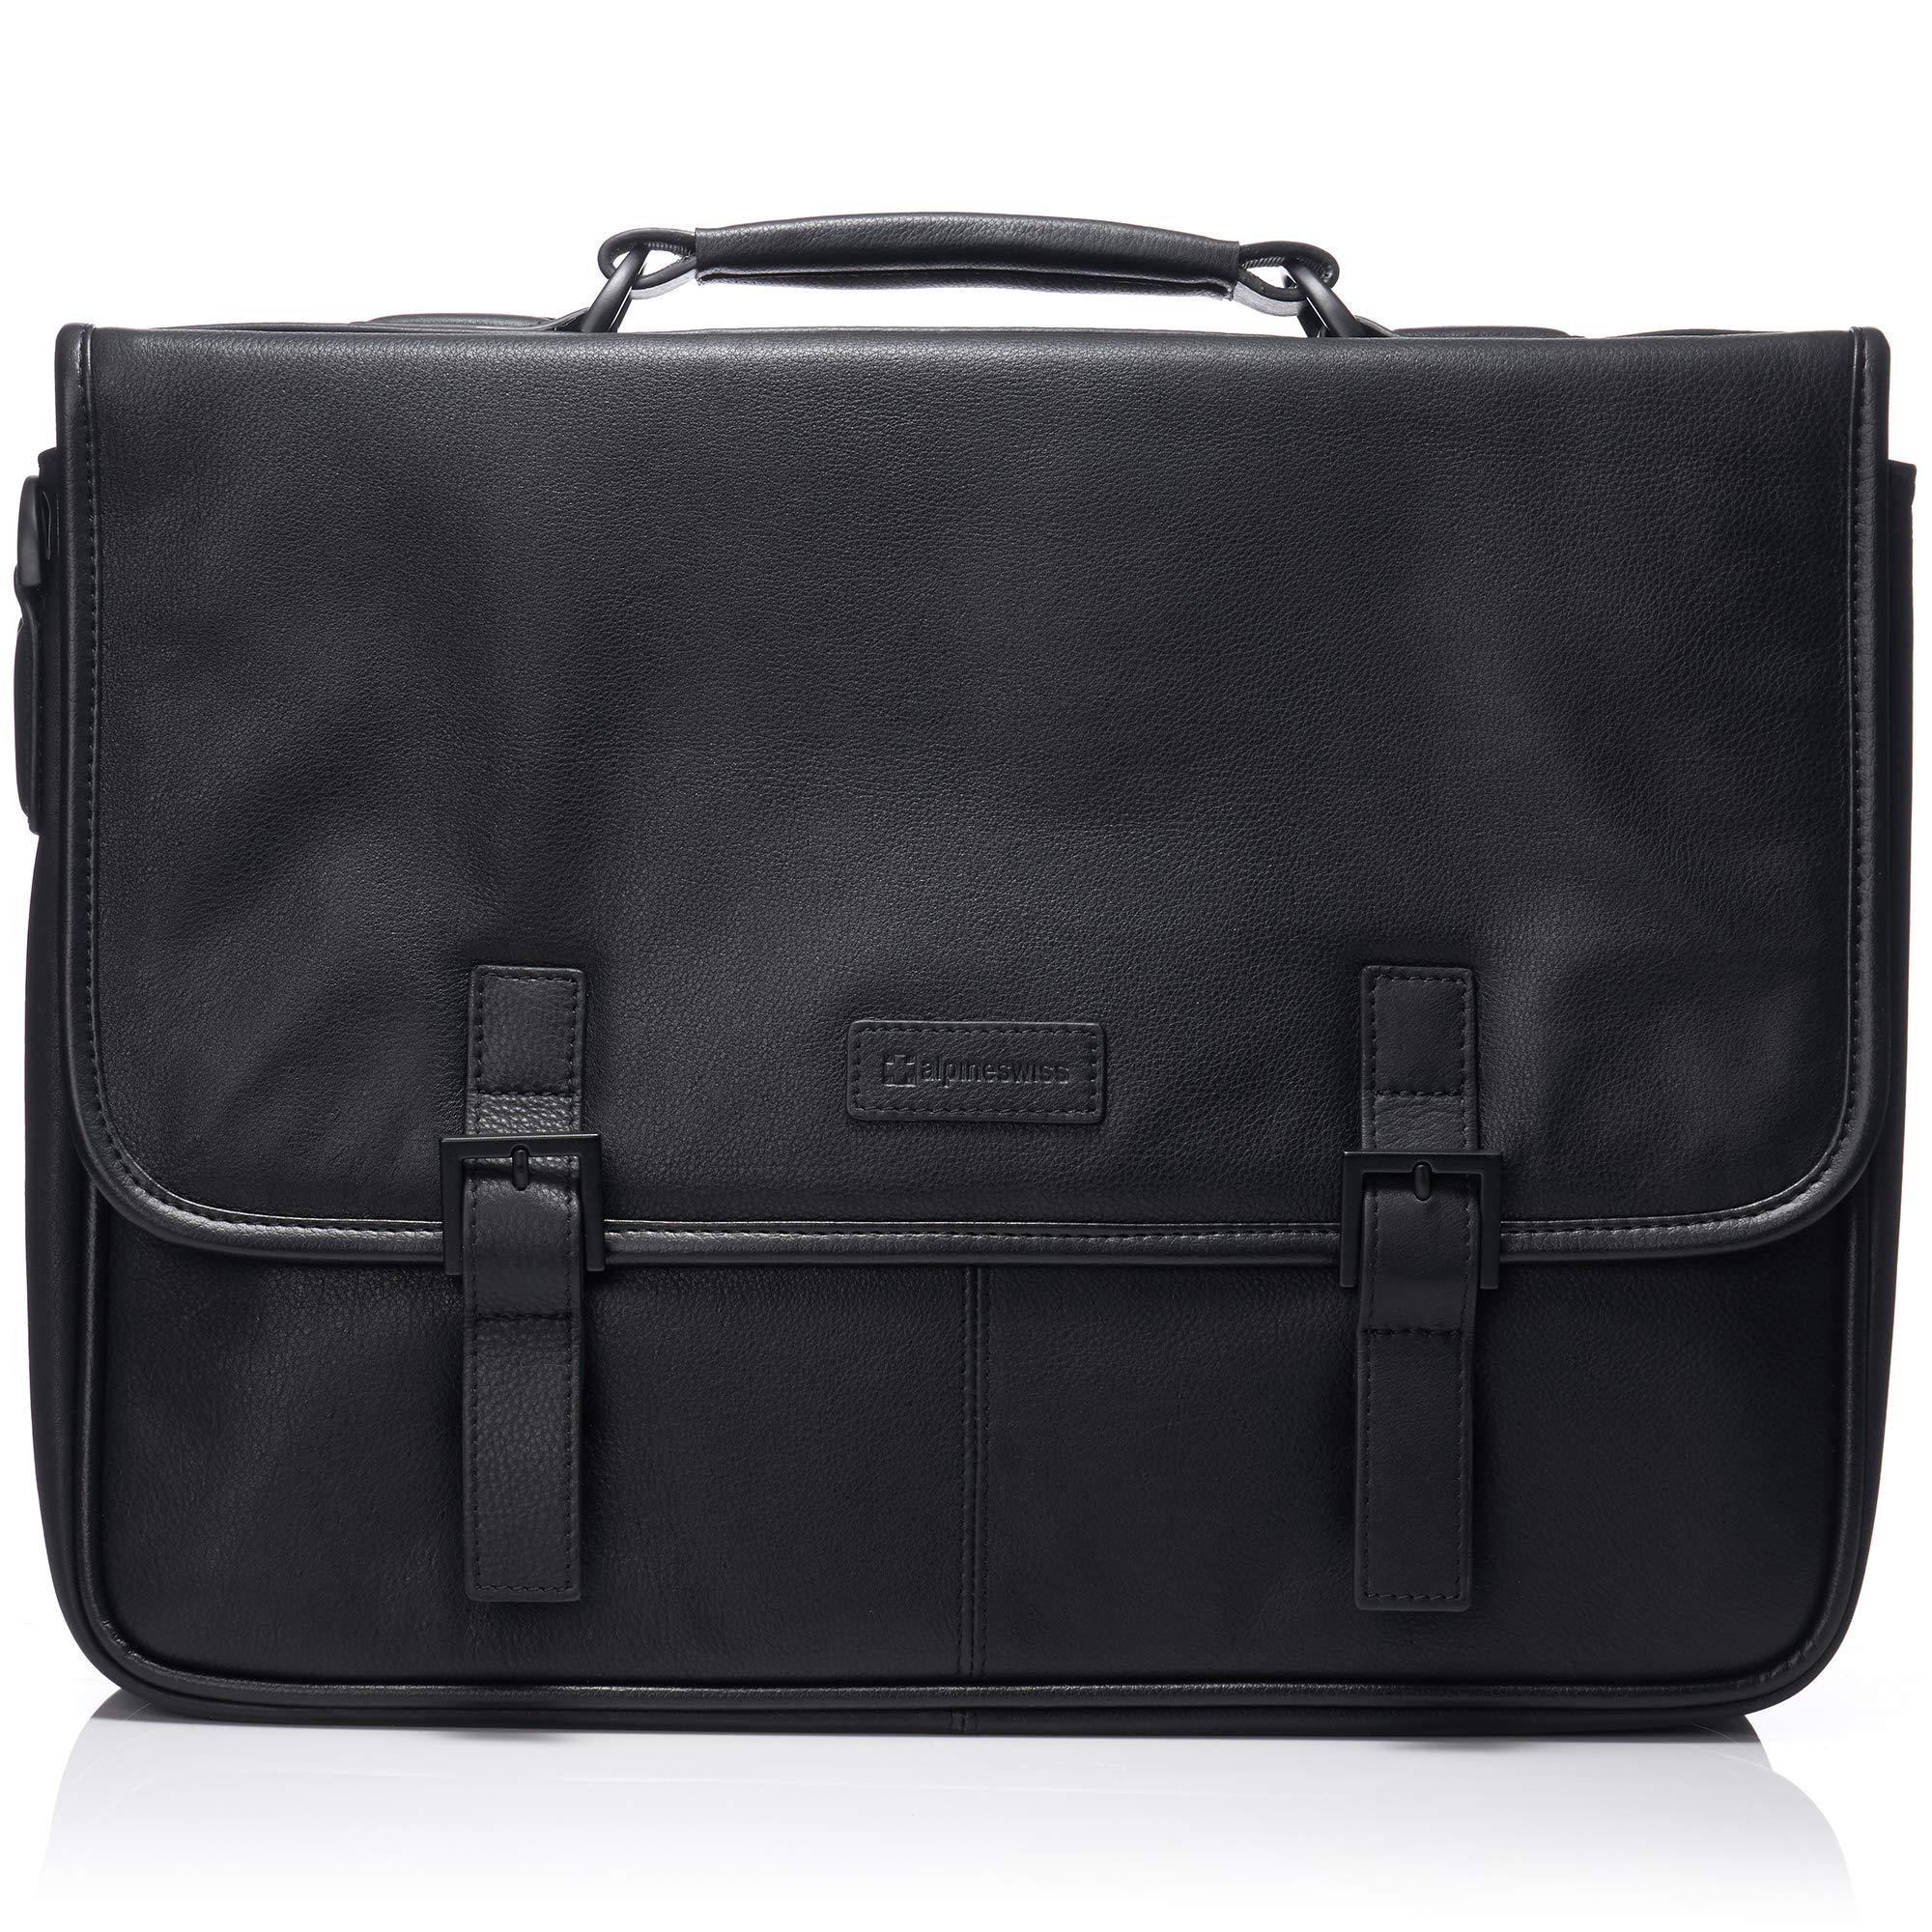 "Alpine Swiss Genuine Leather 15.6"" Laptop Briefcase Flap Over Messenger Bag BLK by alpine swiss (Image #1)"